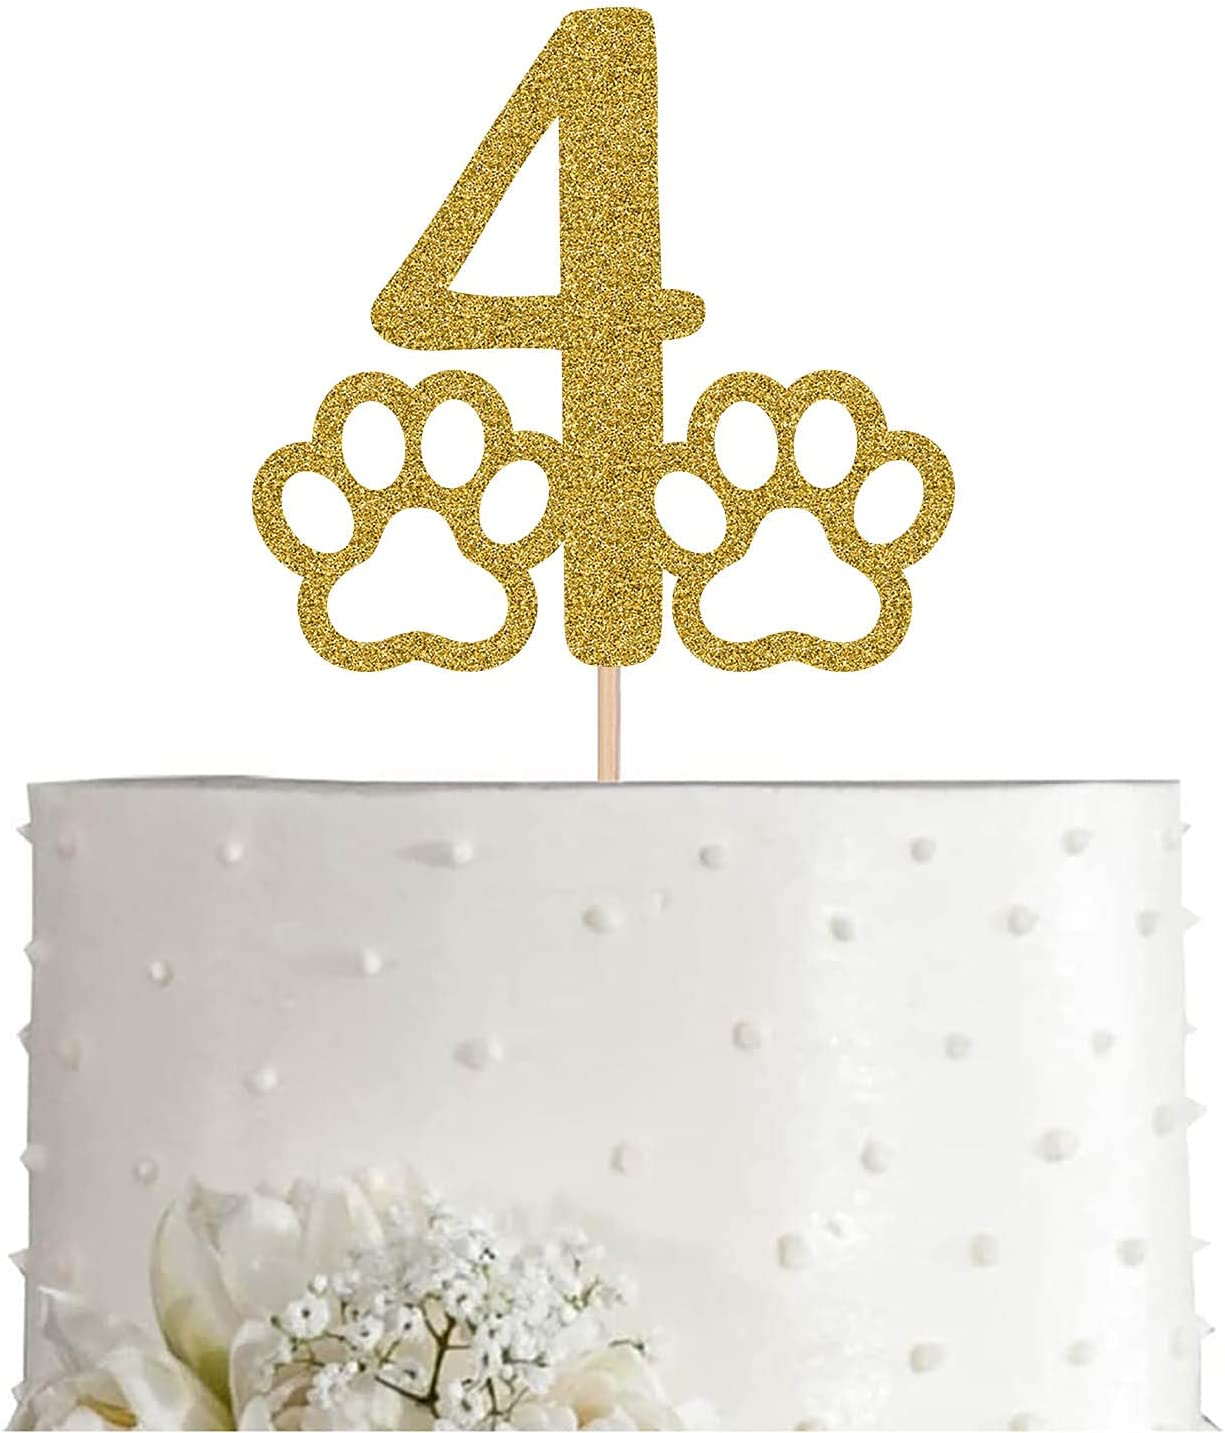 Gold Dog 4 Cake Topper Glitter Lover Birthd 4th Year-end Award-winning store annual account Or Cat